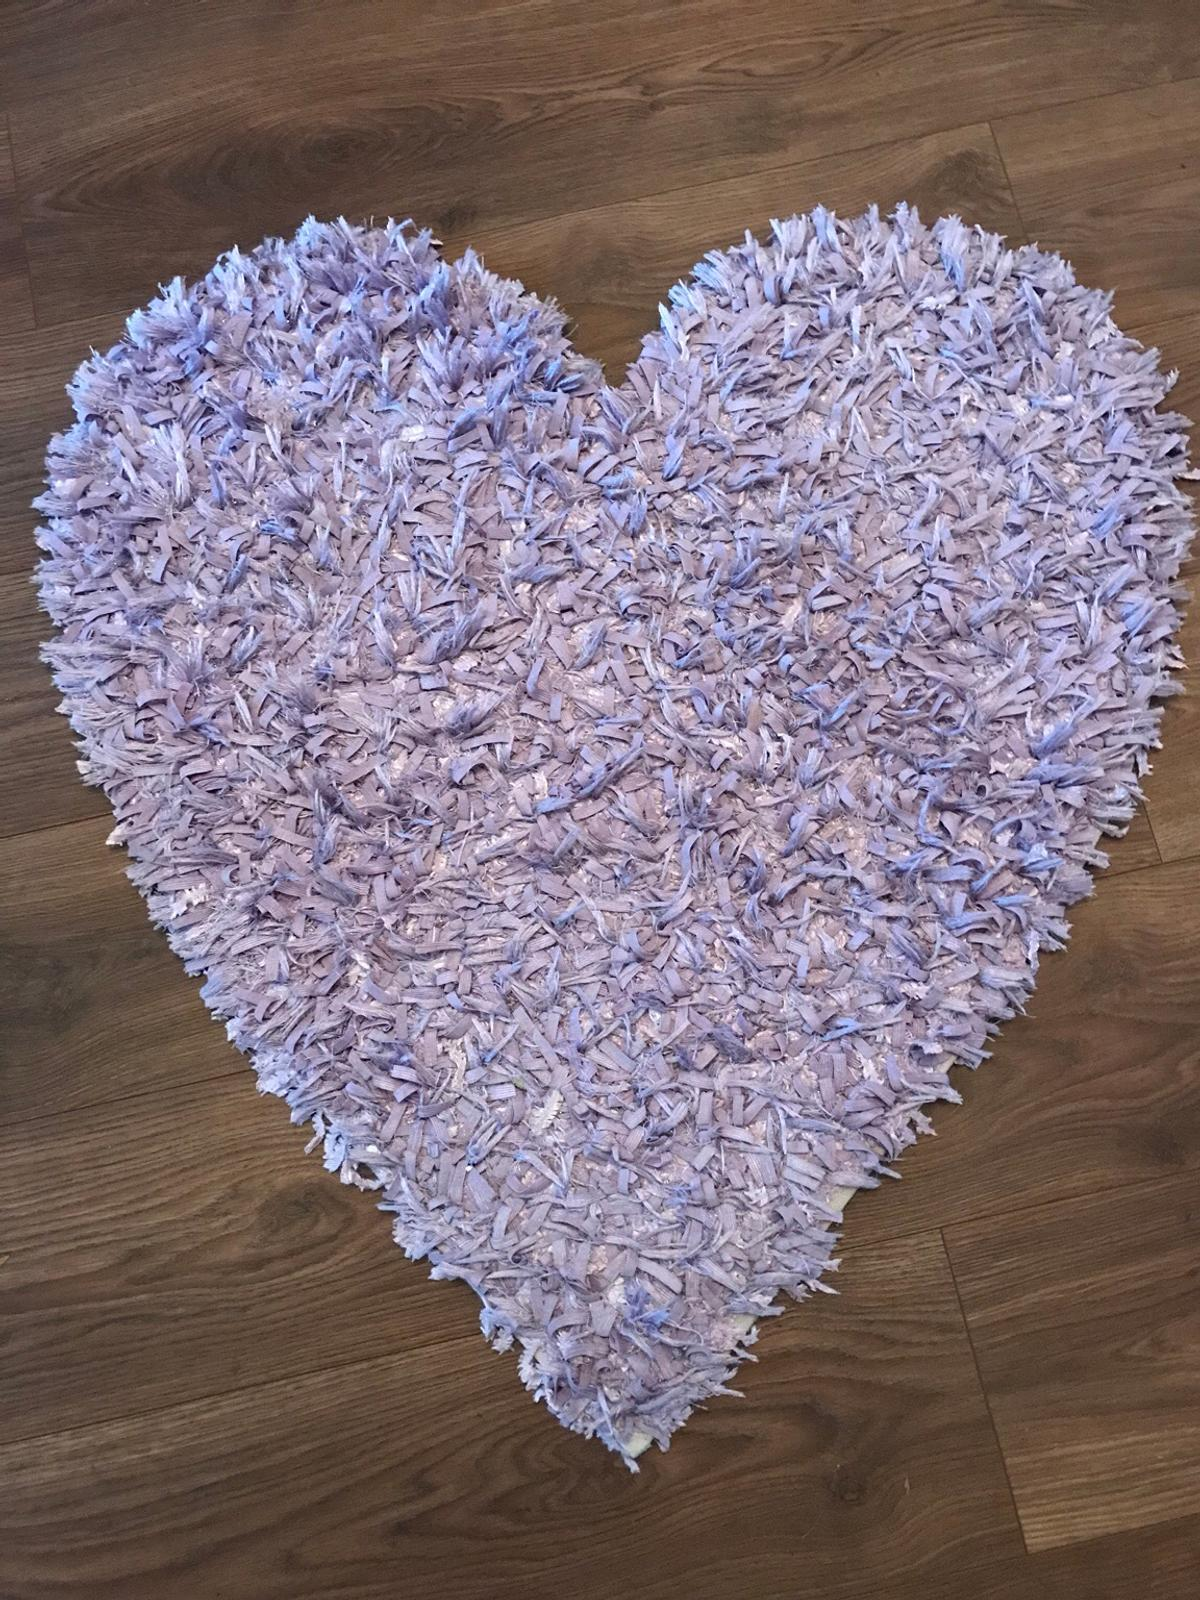 Next Lilac Heart Rug In Dy8 Dudley For